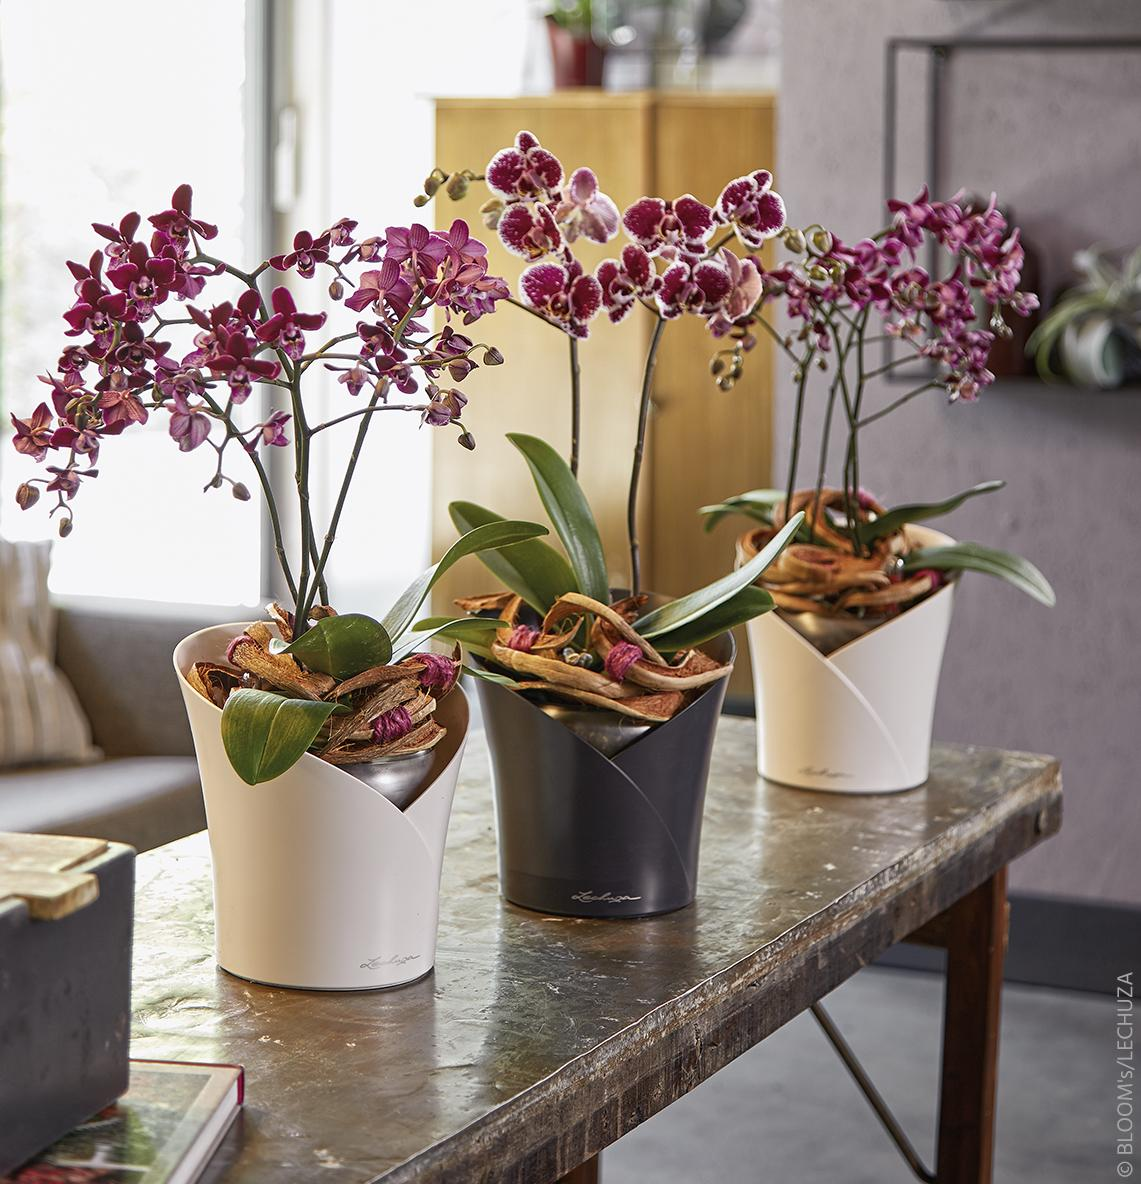 Designed especially for these precious tropical species ORCHIDEA is the new planter from LECHUZA